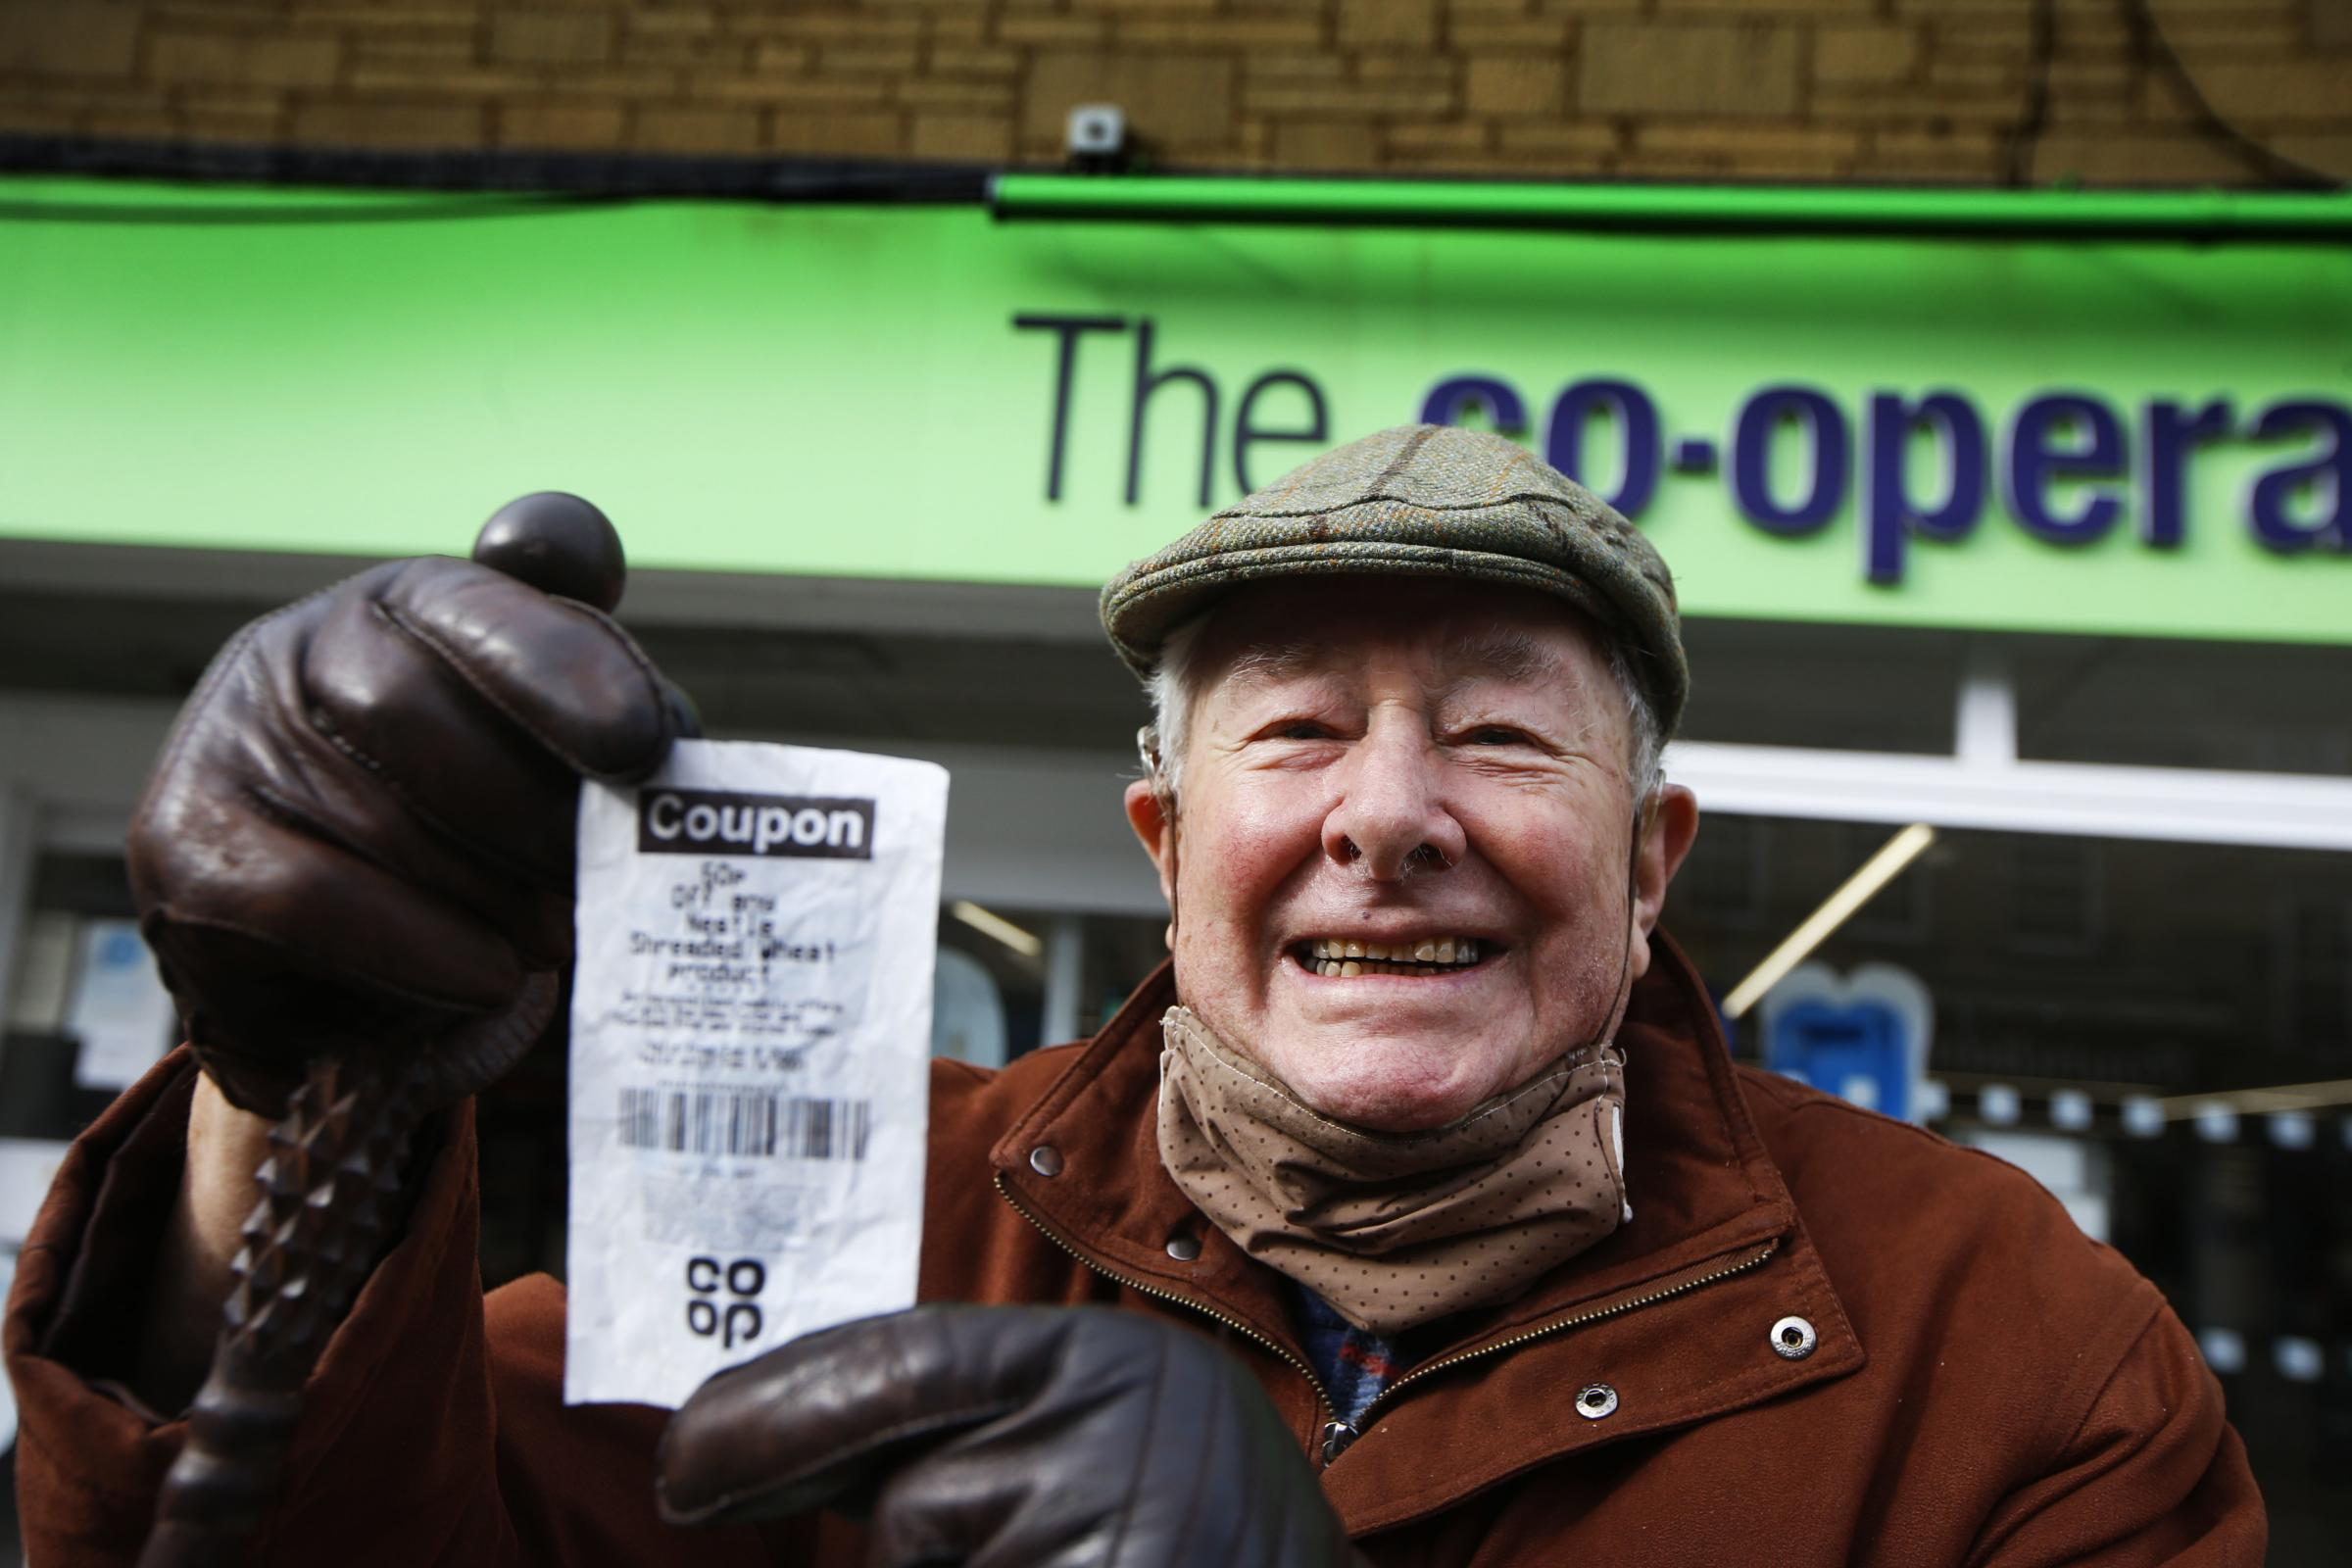 Witney pensioner John Osman collects his 50p from the Co-op after the store refused his voucher. Picture by Ed Nix